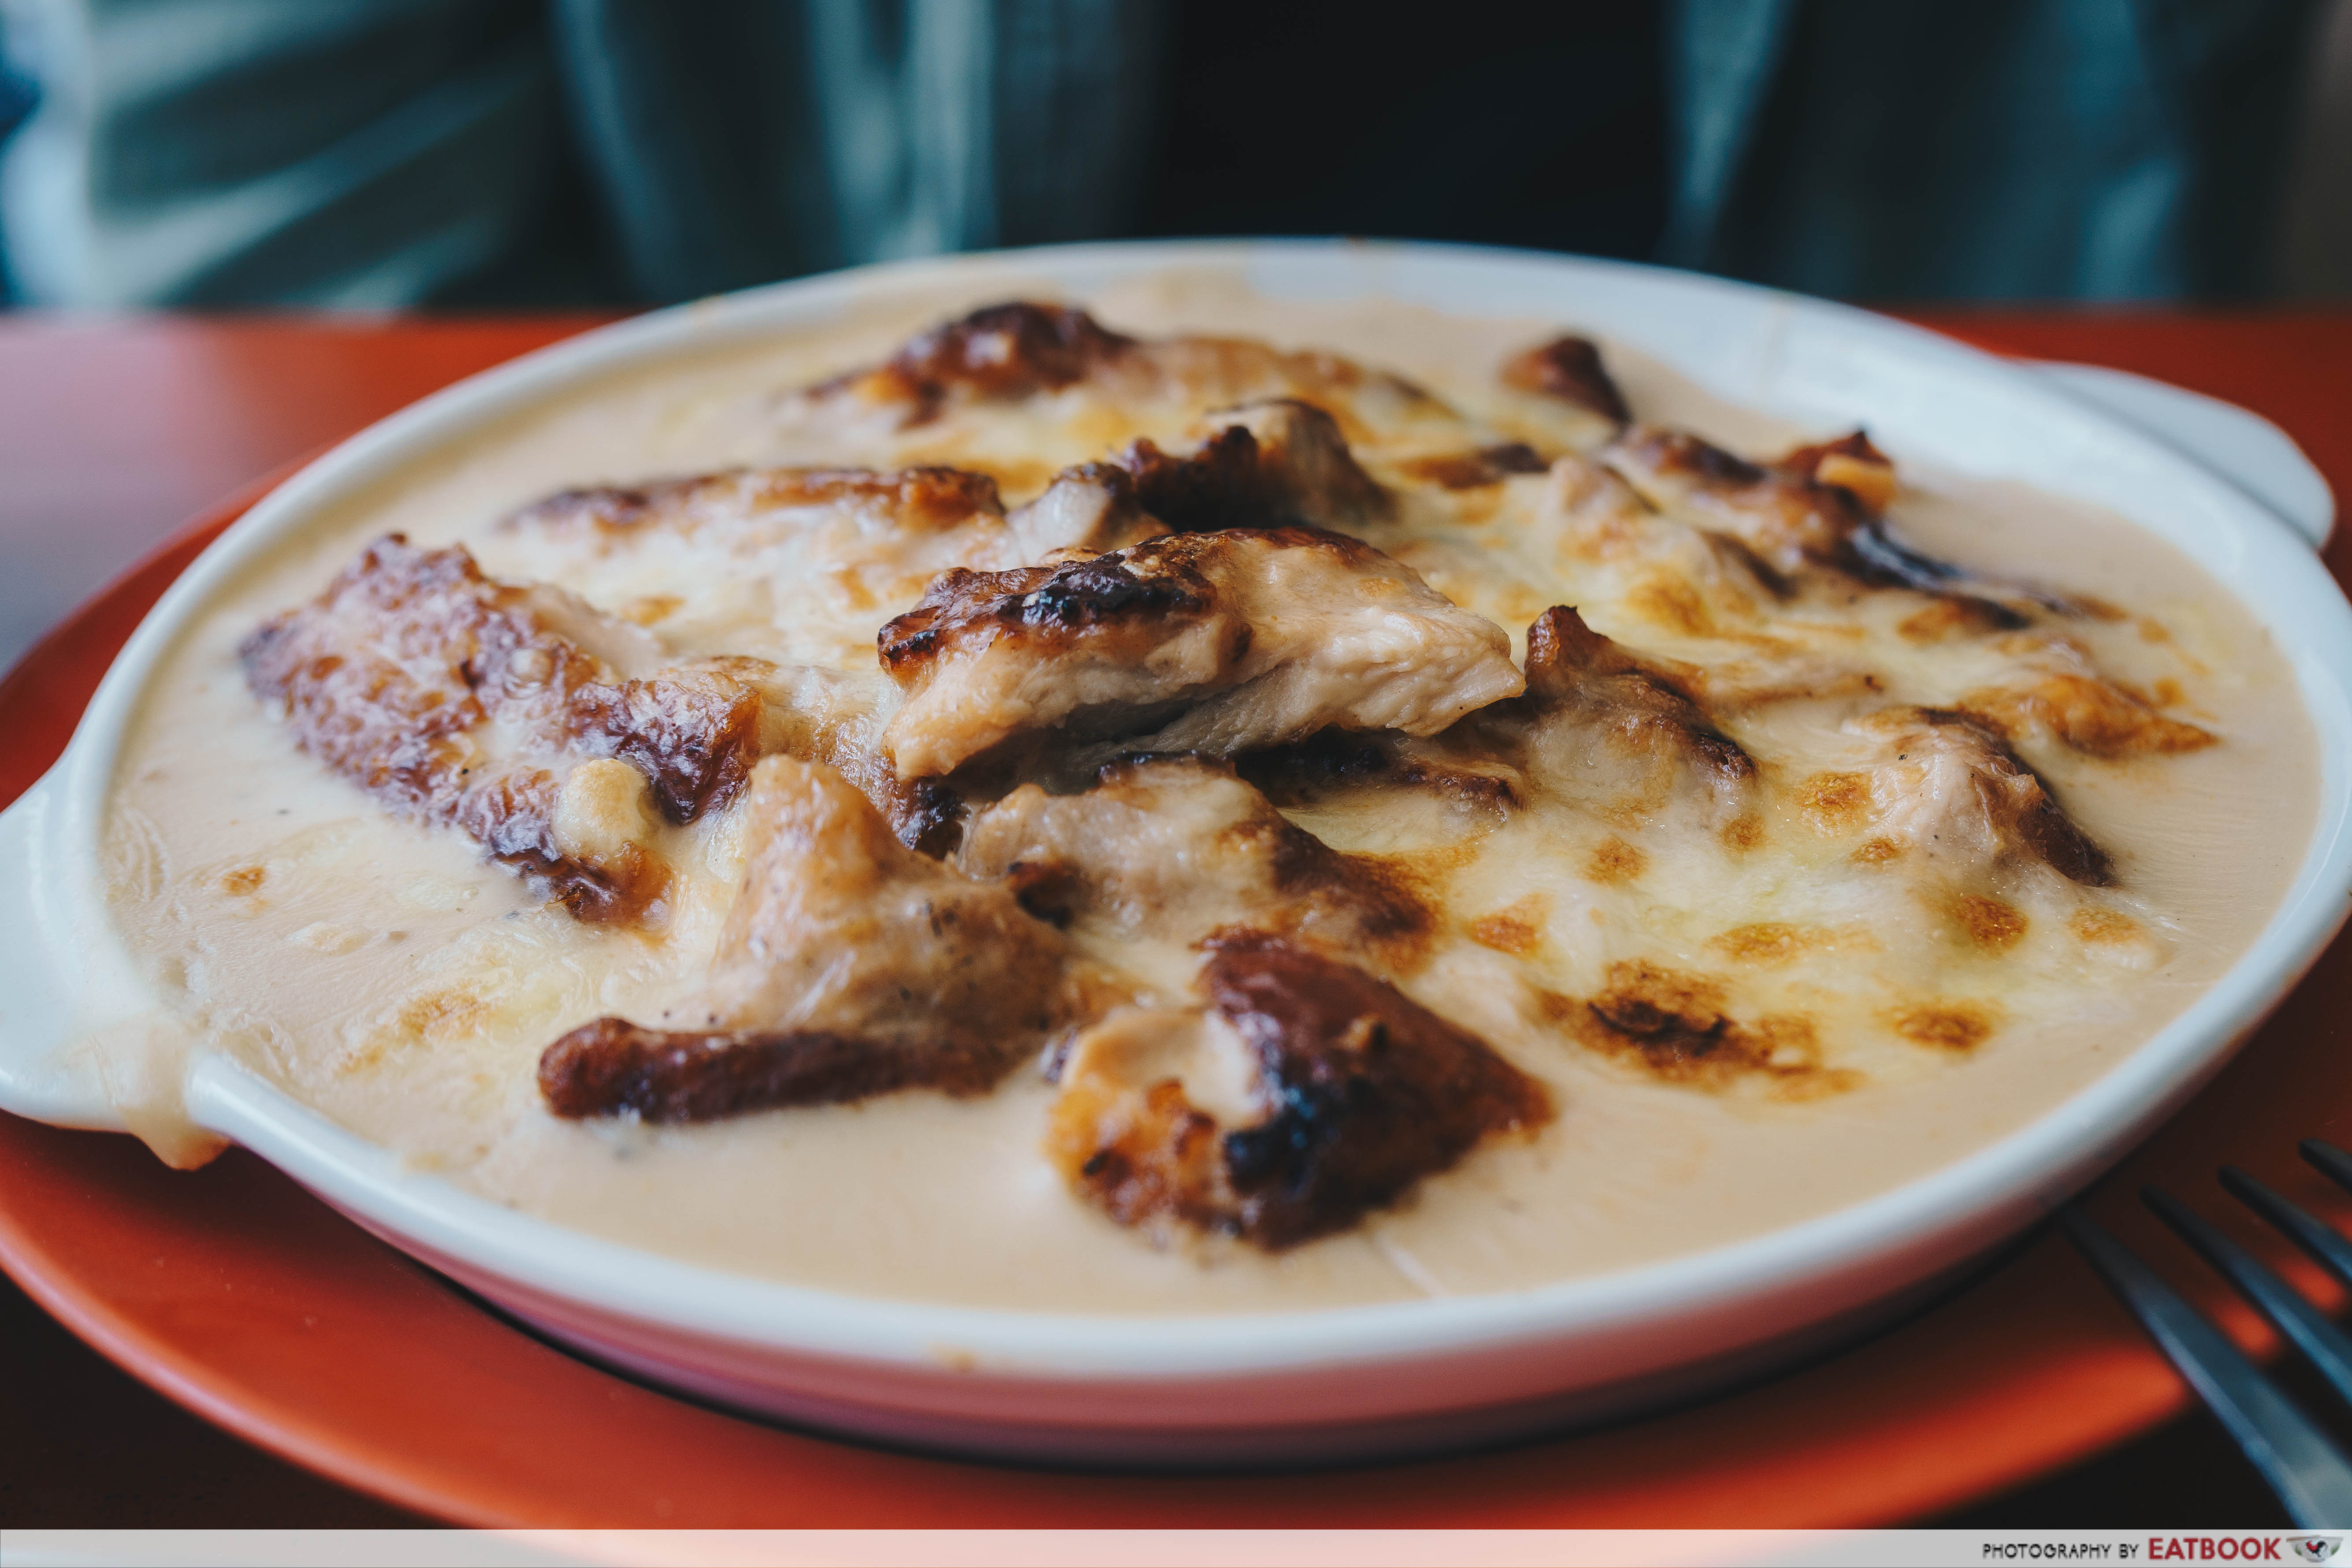 Tom's Kitchen - Baked Rice w White Sauce & Grilled Chicken